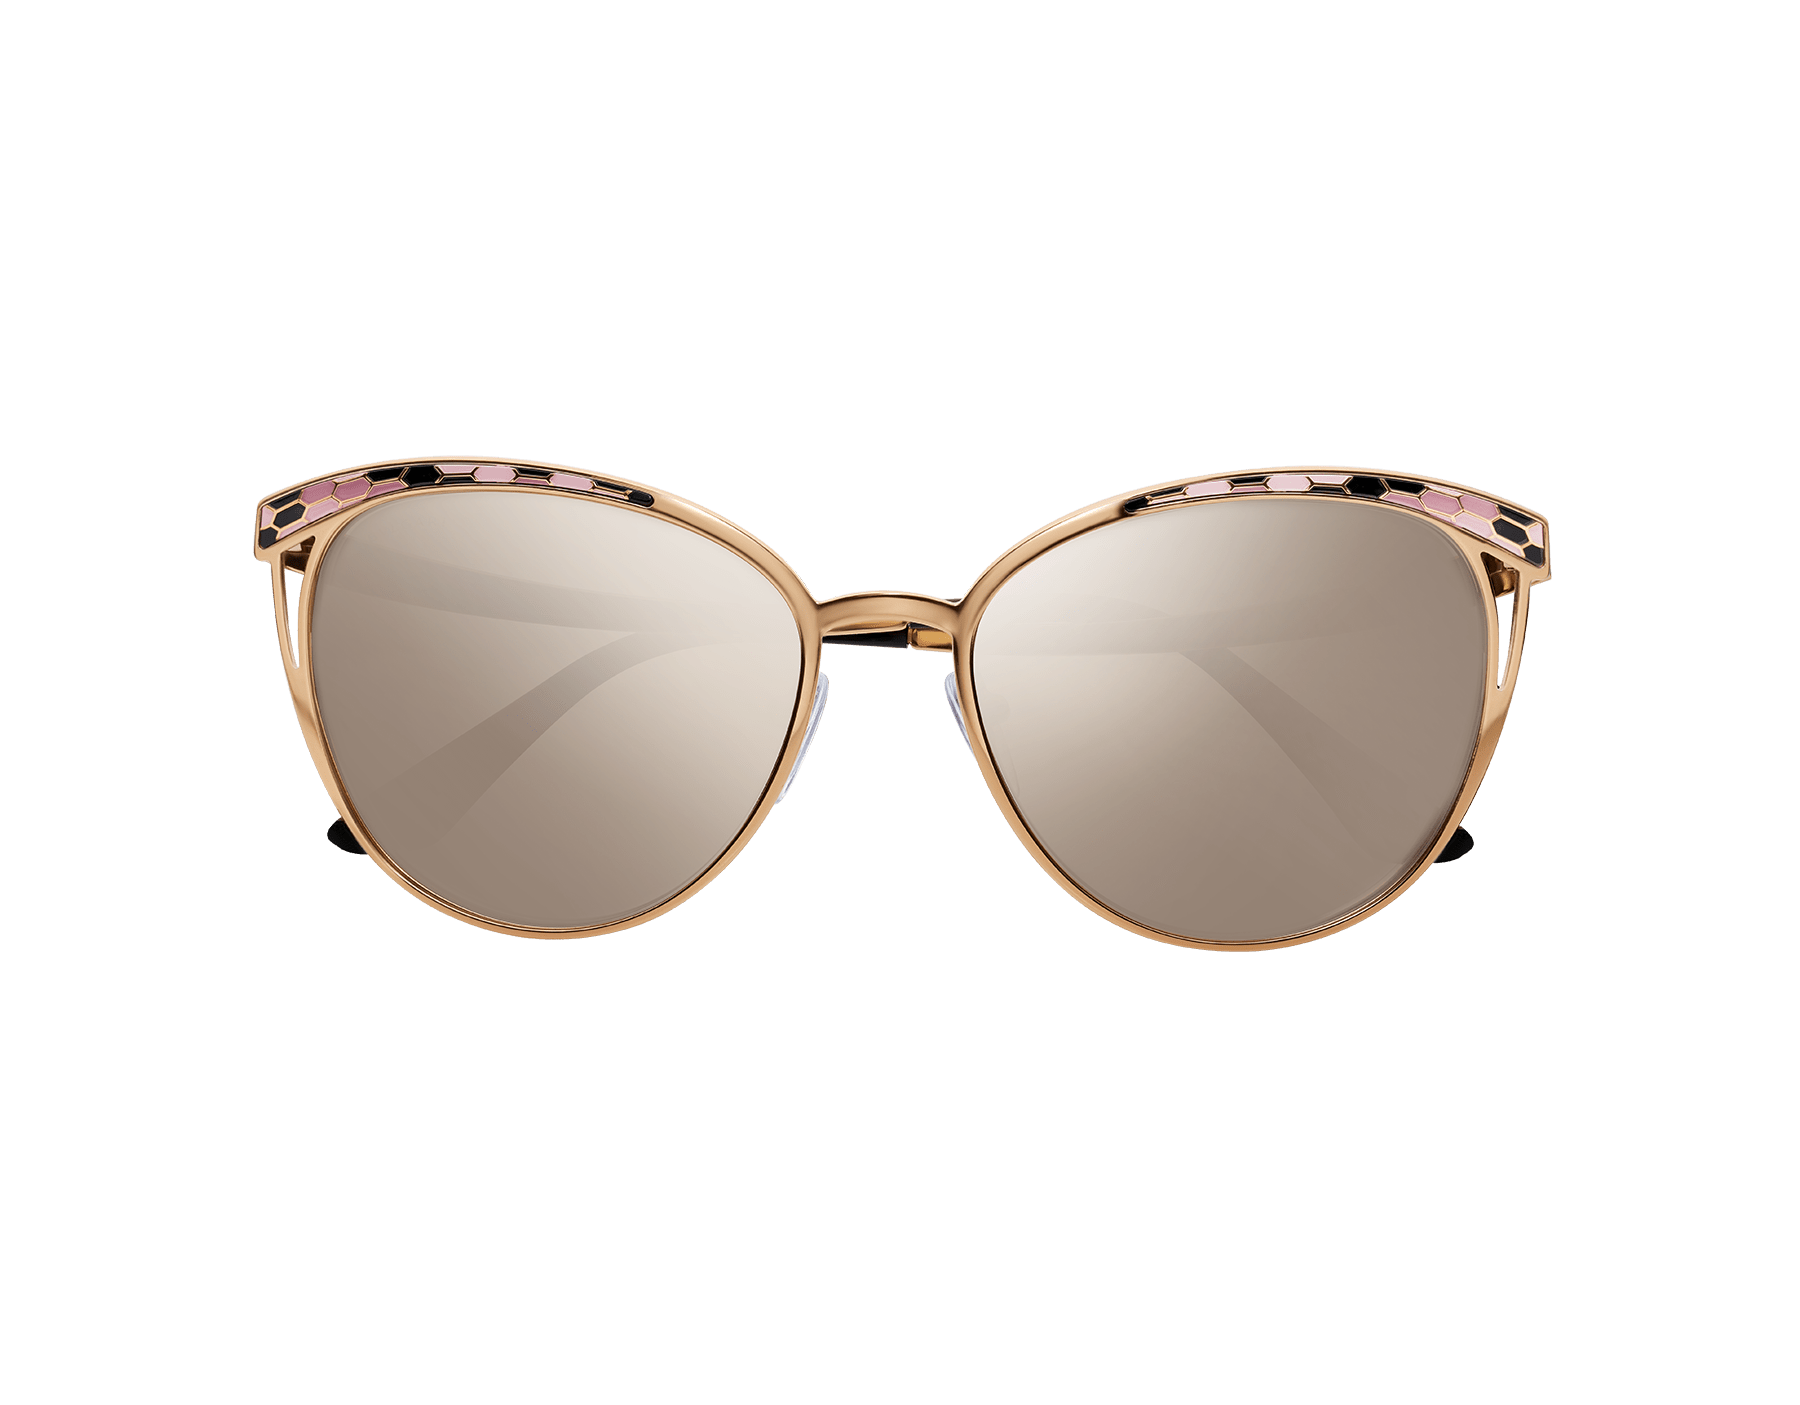 Serpenti 'Serpentine' contemporary cat-eye metal sunglasses. 903287 image 2